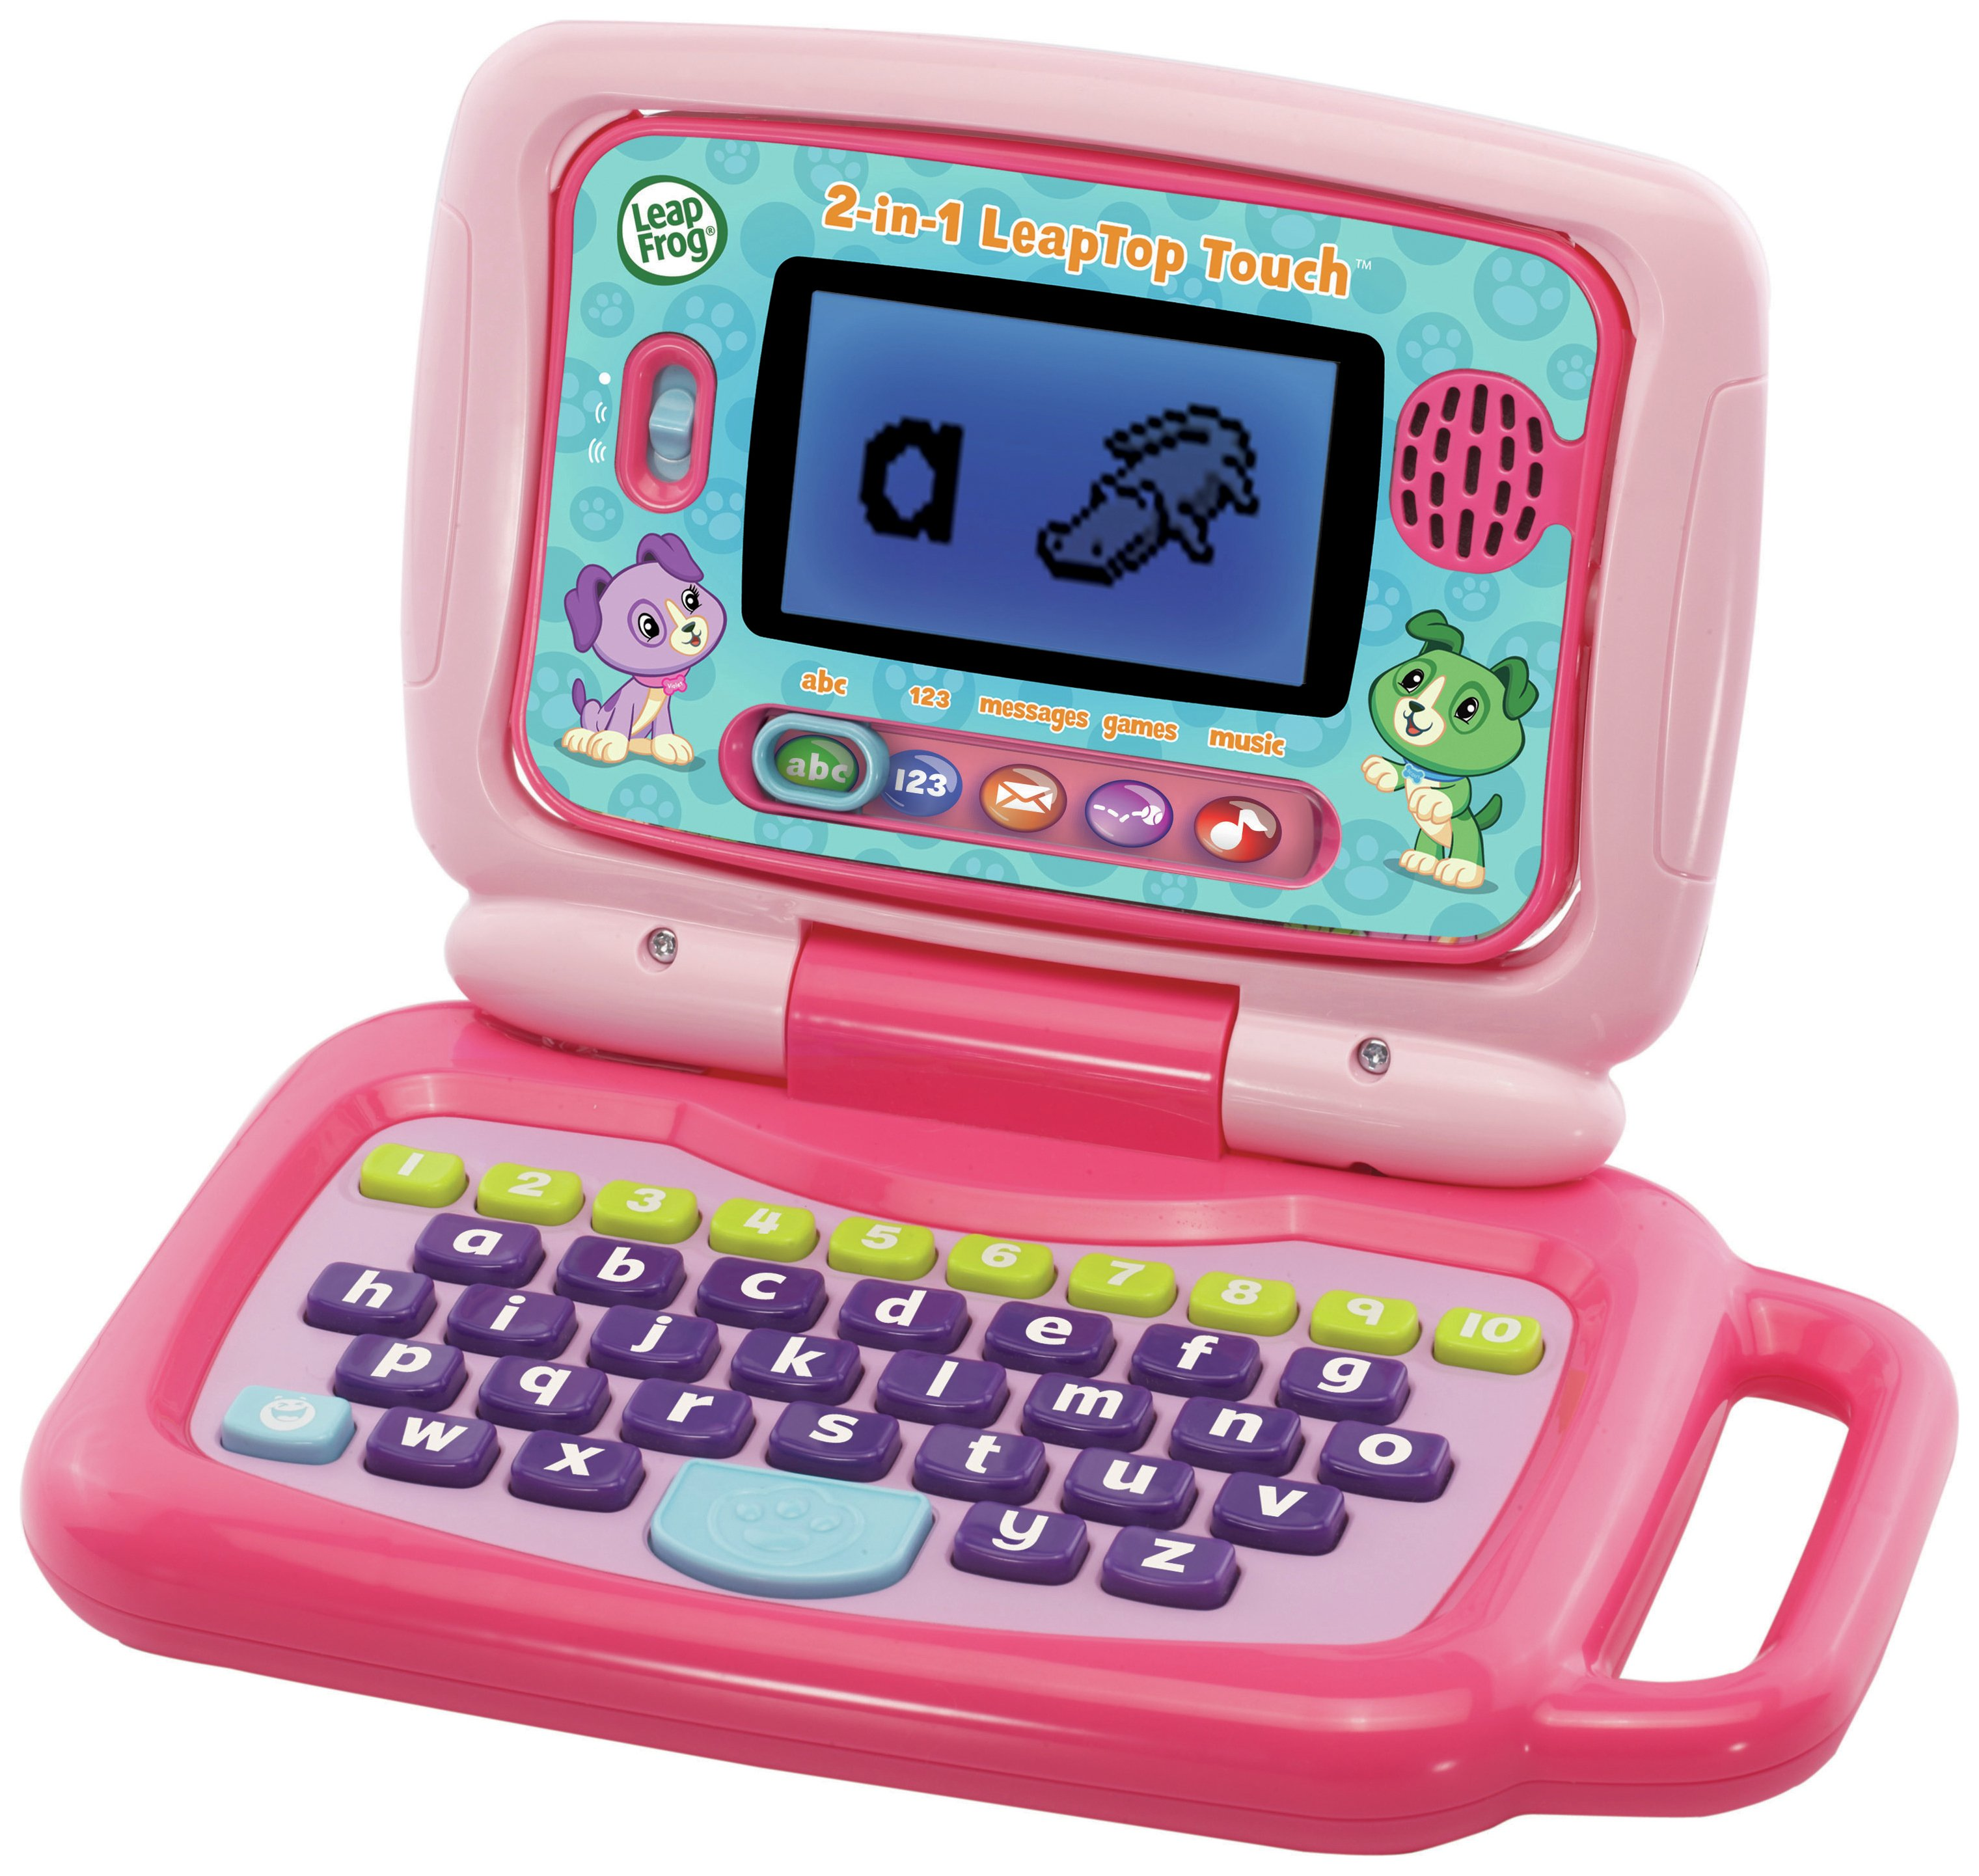 Image of LeapFrog 2 in 1 Laptop Touch - Pink